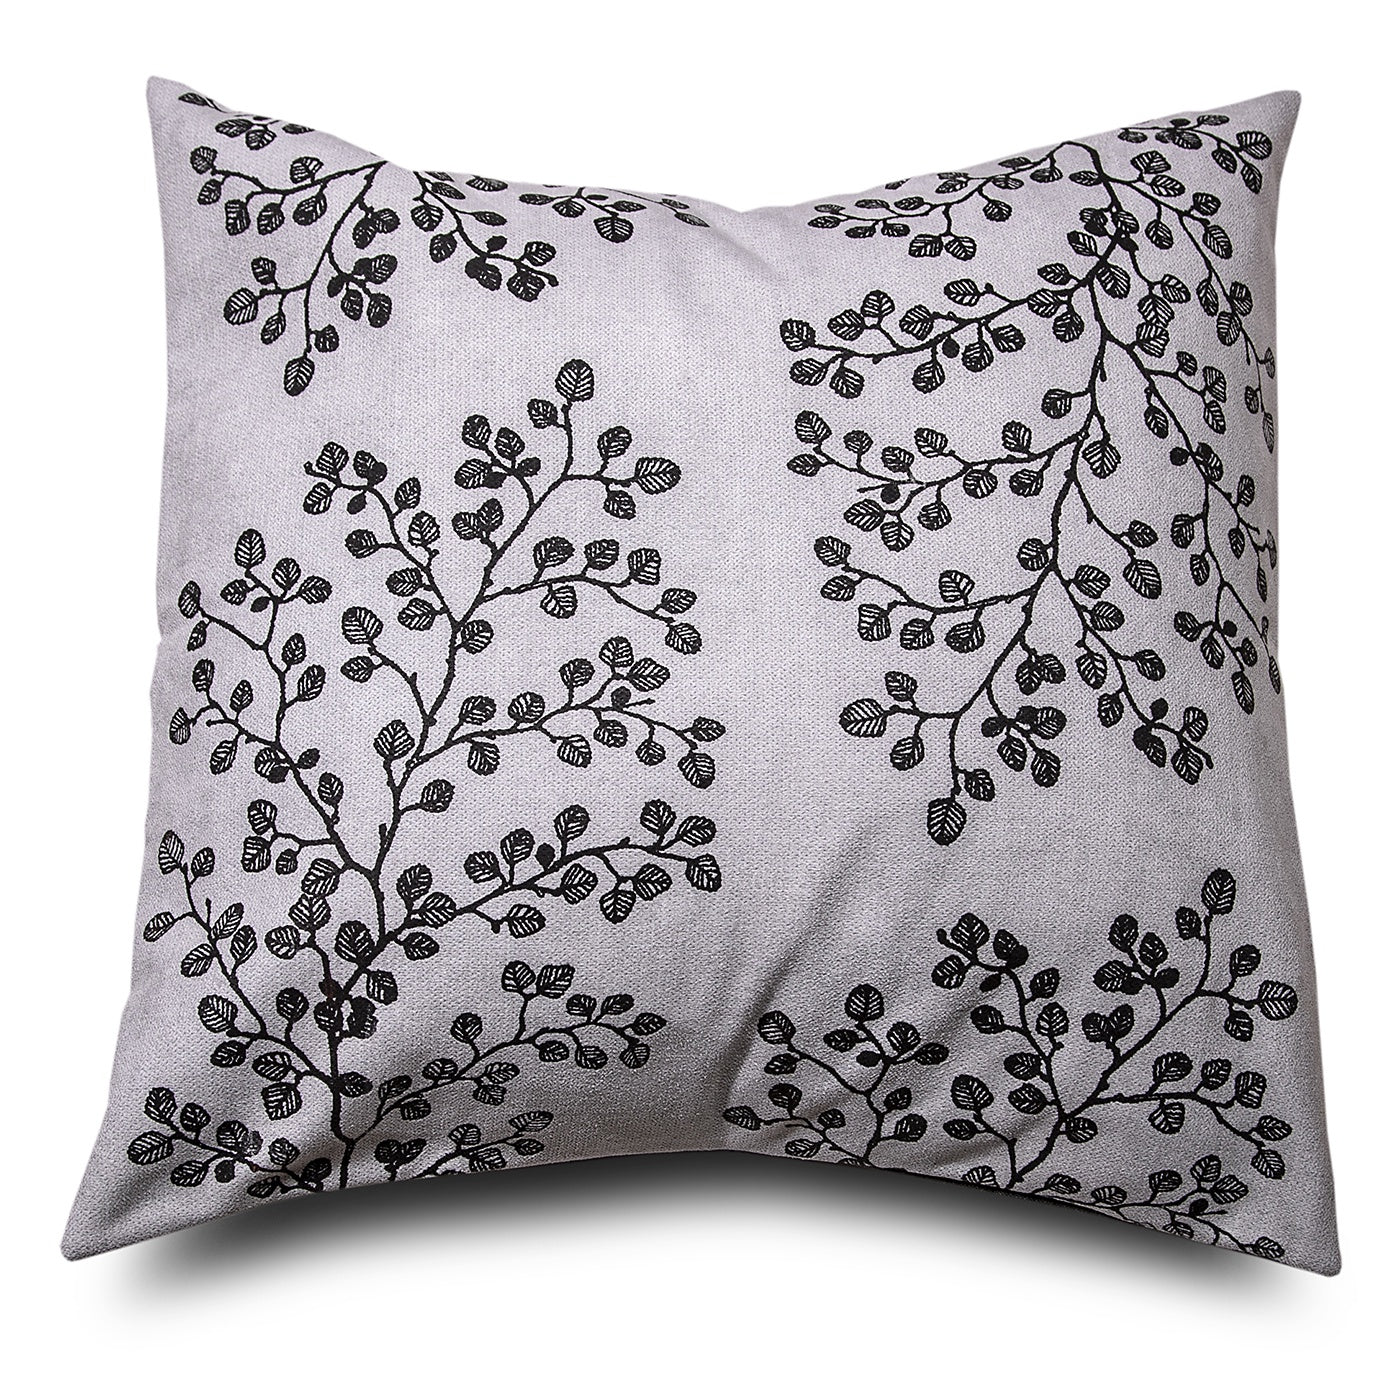 Stalley Textile Co. - Cushion Cover - Fagus - Black on Light Grey